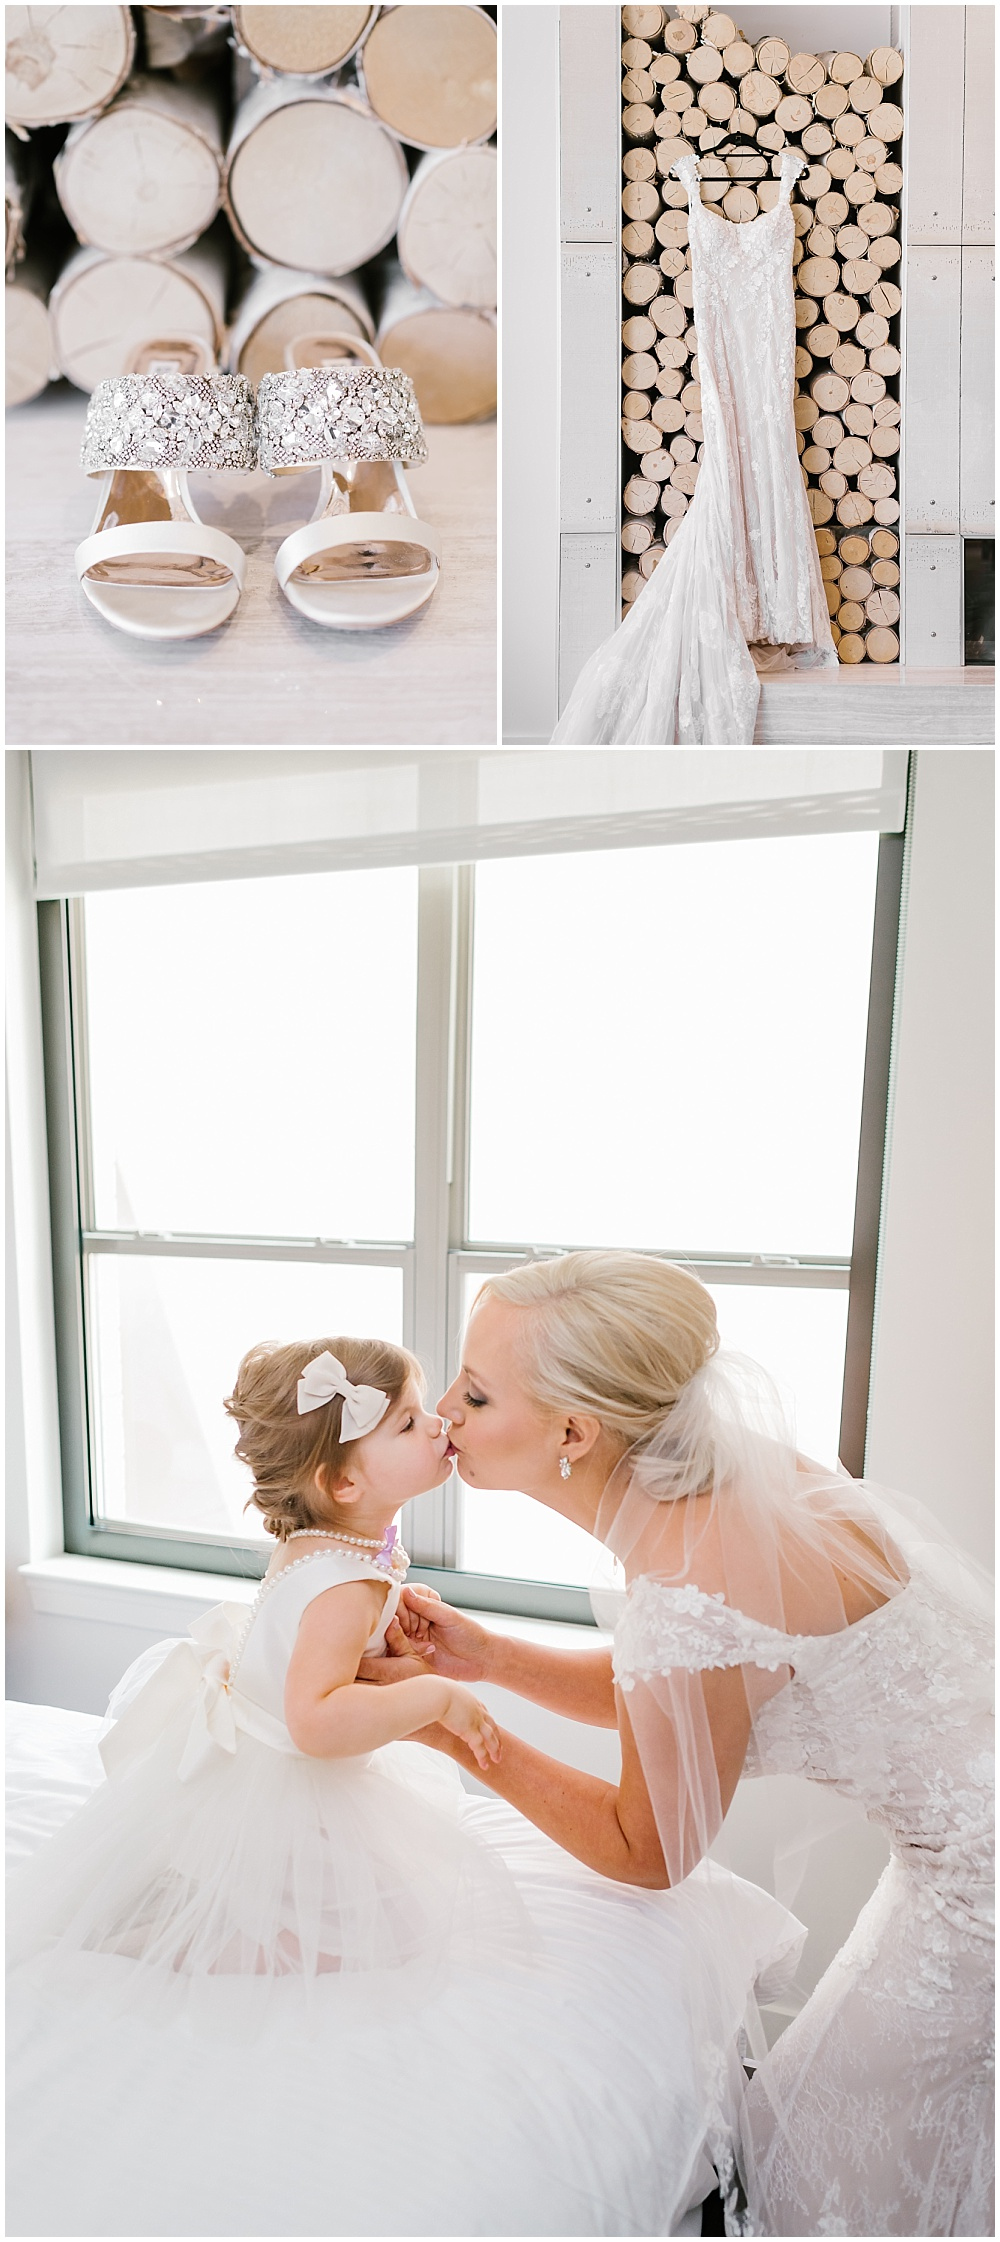 Badgley Mischka wedding shoes, lace wedding dress details and a sweet photo of the bride with her flower girl | A blue and gold downtown Indianapolis spring wedding at the Grand Hall at Historic Union Station with Rebecca Shehorn Photography and Jessica Dum Wedding Coordination is on the blog today!